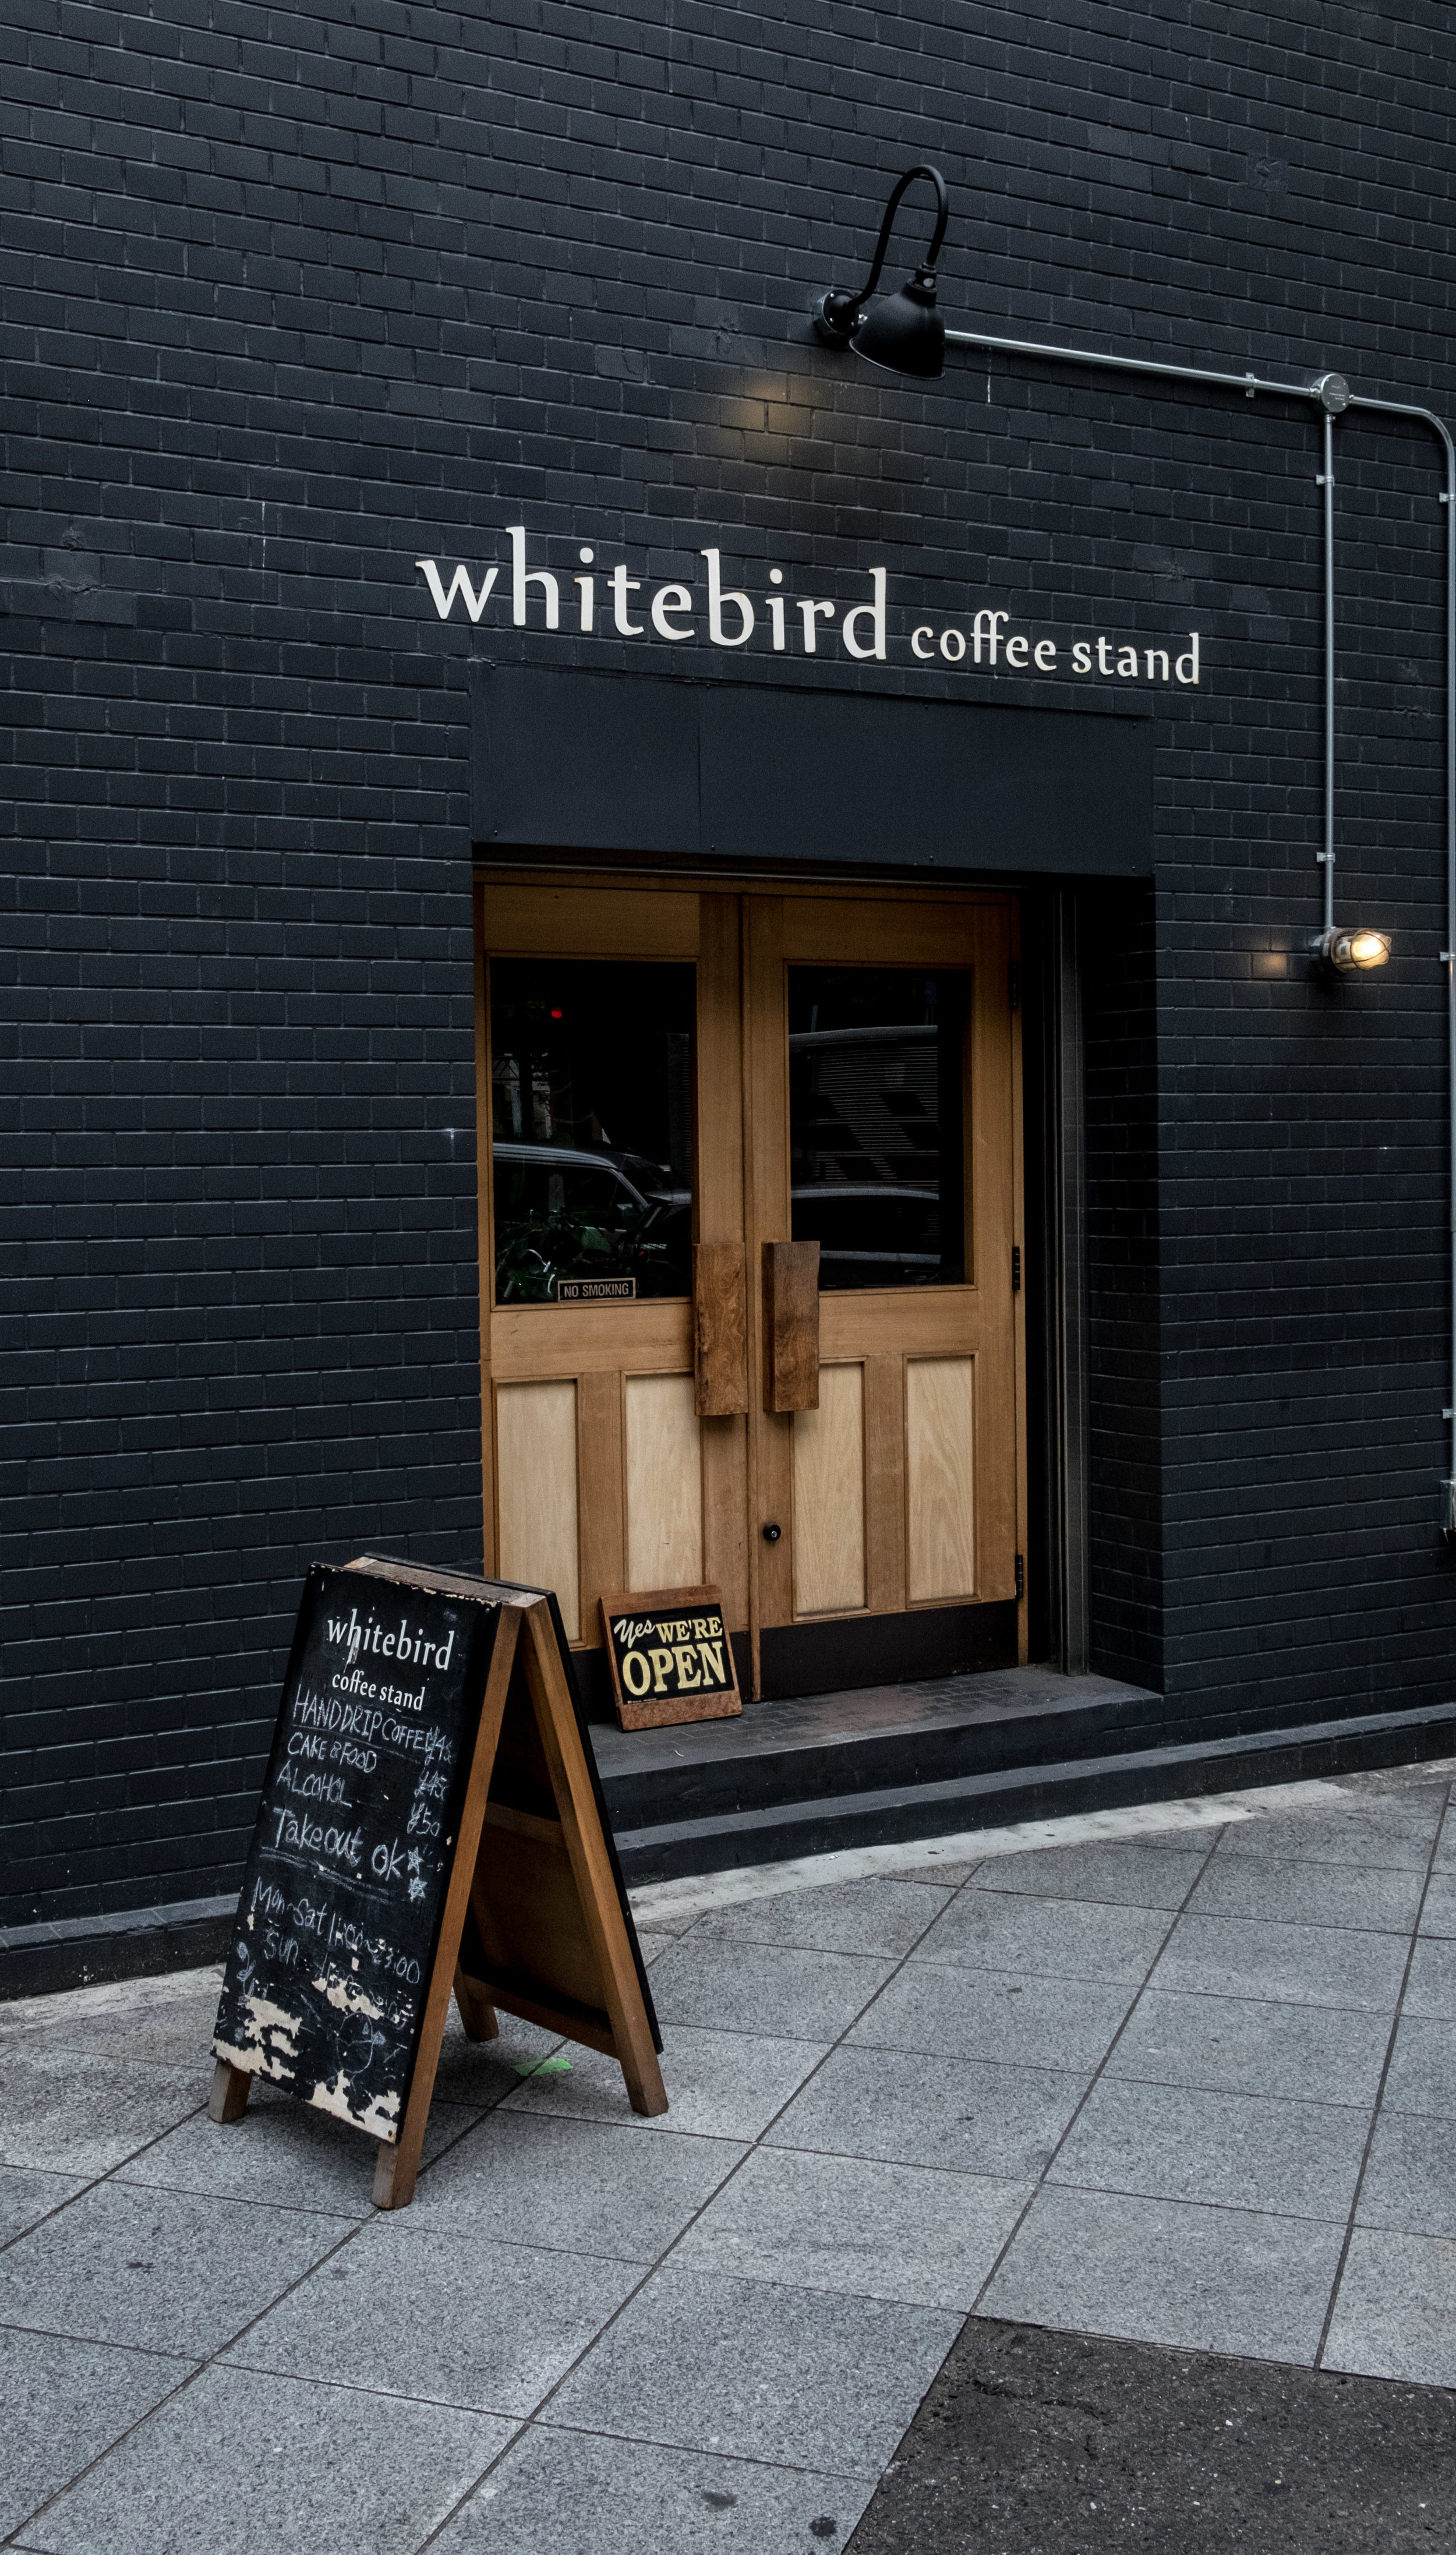 white bird coffee stand street view